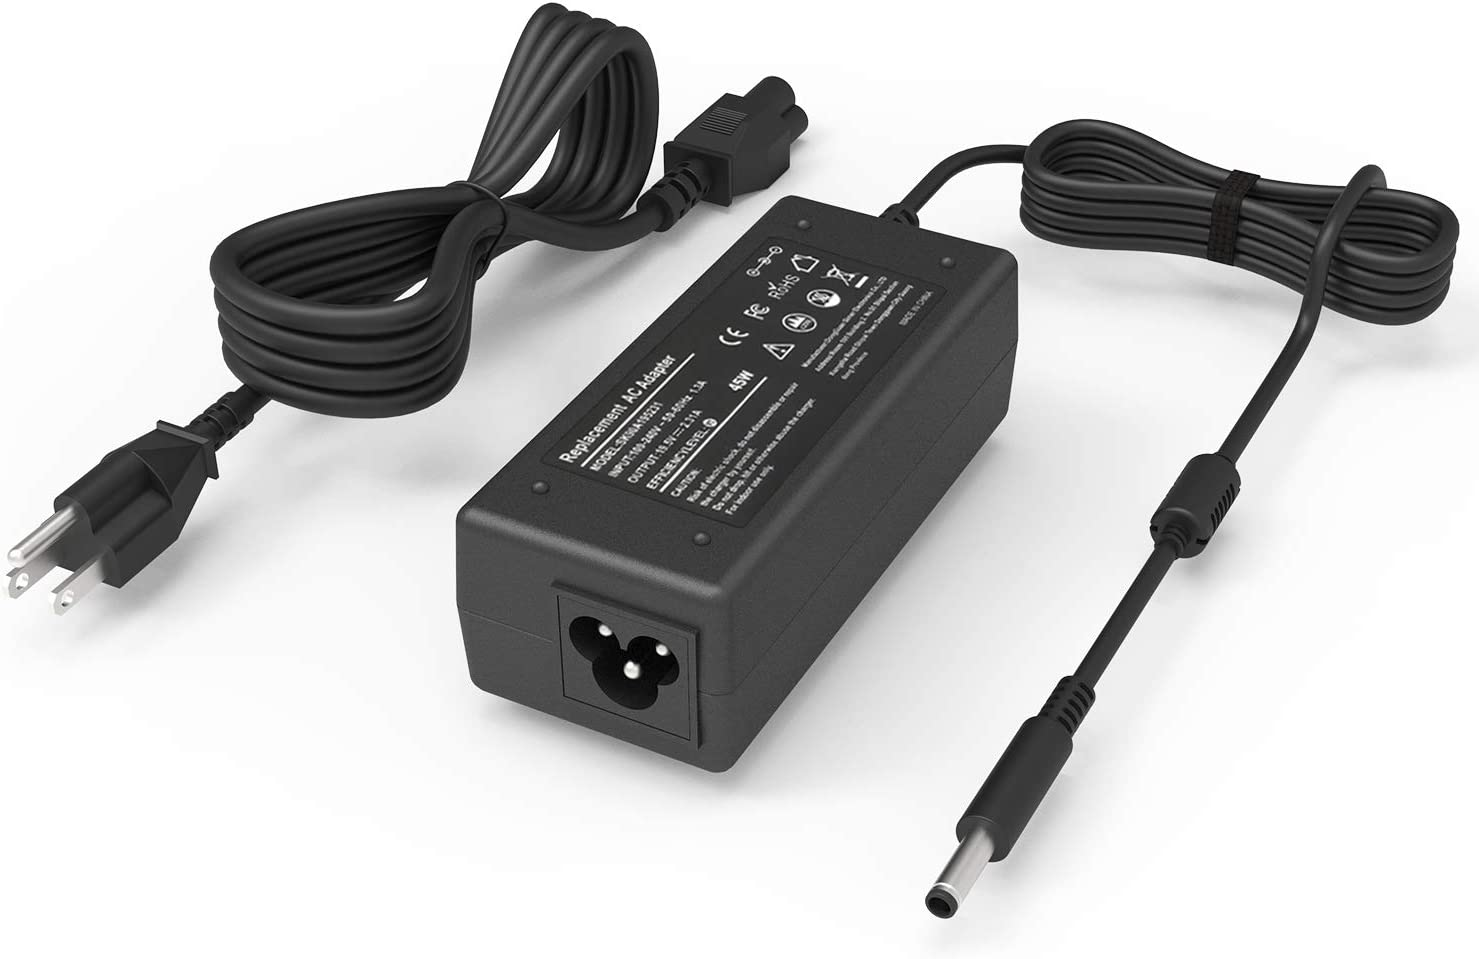 45W Replacement AC Adapter Charger for Dell Inspiron 15 3000 5000 Series 15-3552 3555 3558 3565 3567 5551 5552 5555 5558 5559 5565 5567 5568 5578 7558 7568 7569 7579 Laptop Power Supply Cord